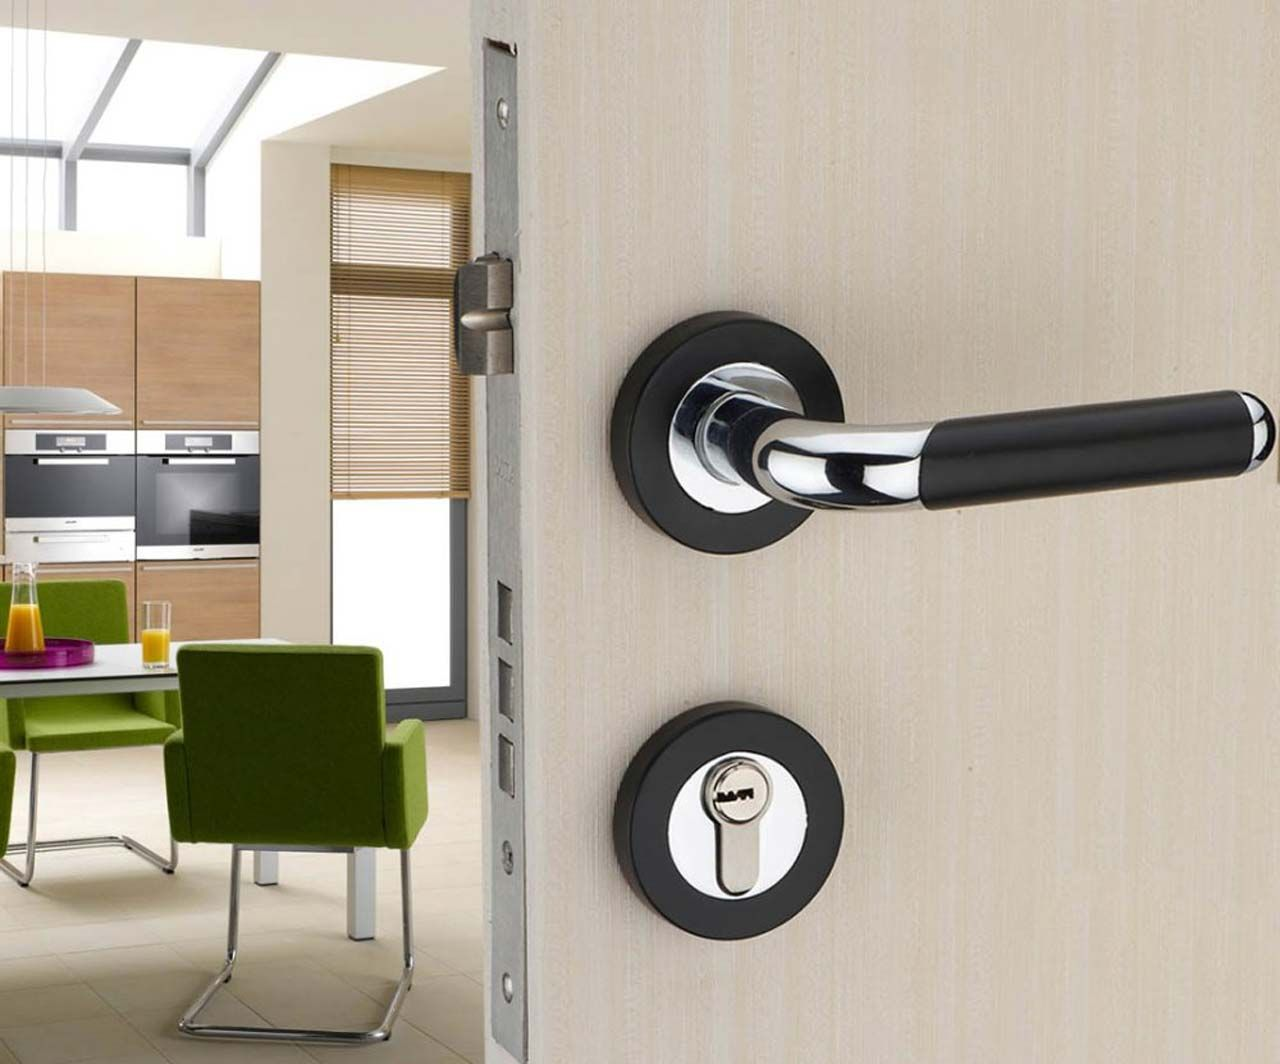 Elegant Door Knob Design Ideas ~ Http://www.lookmyhomes.com/